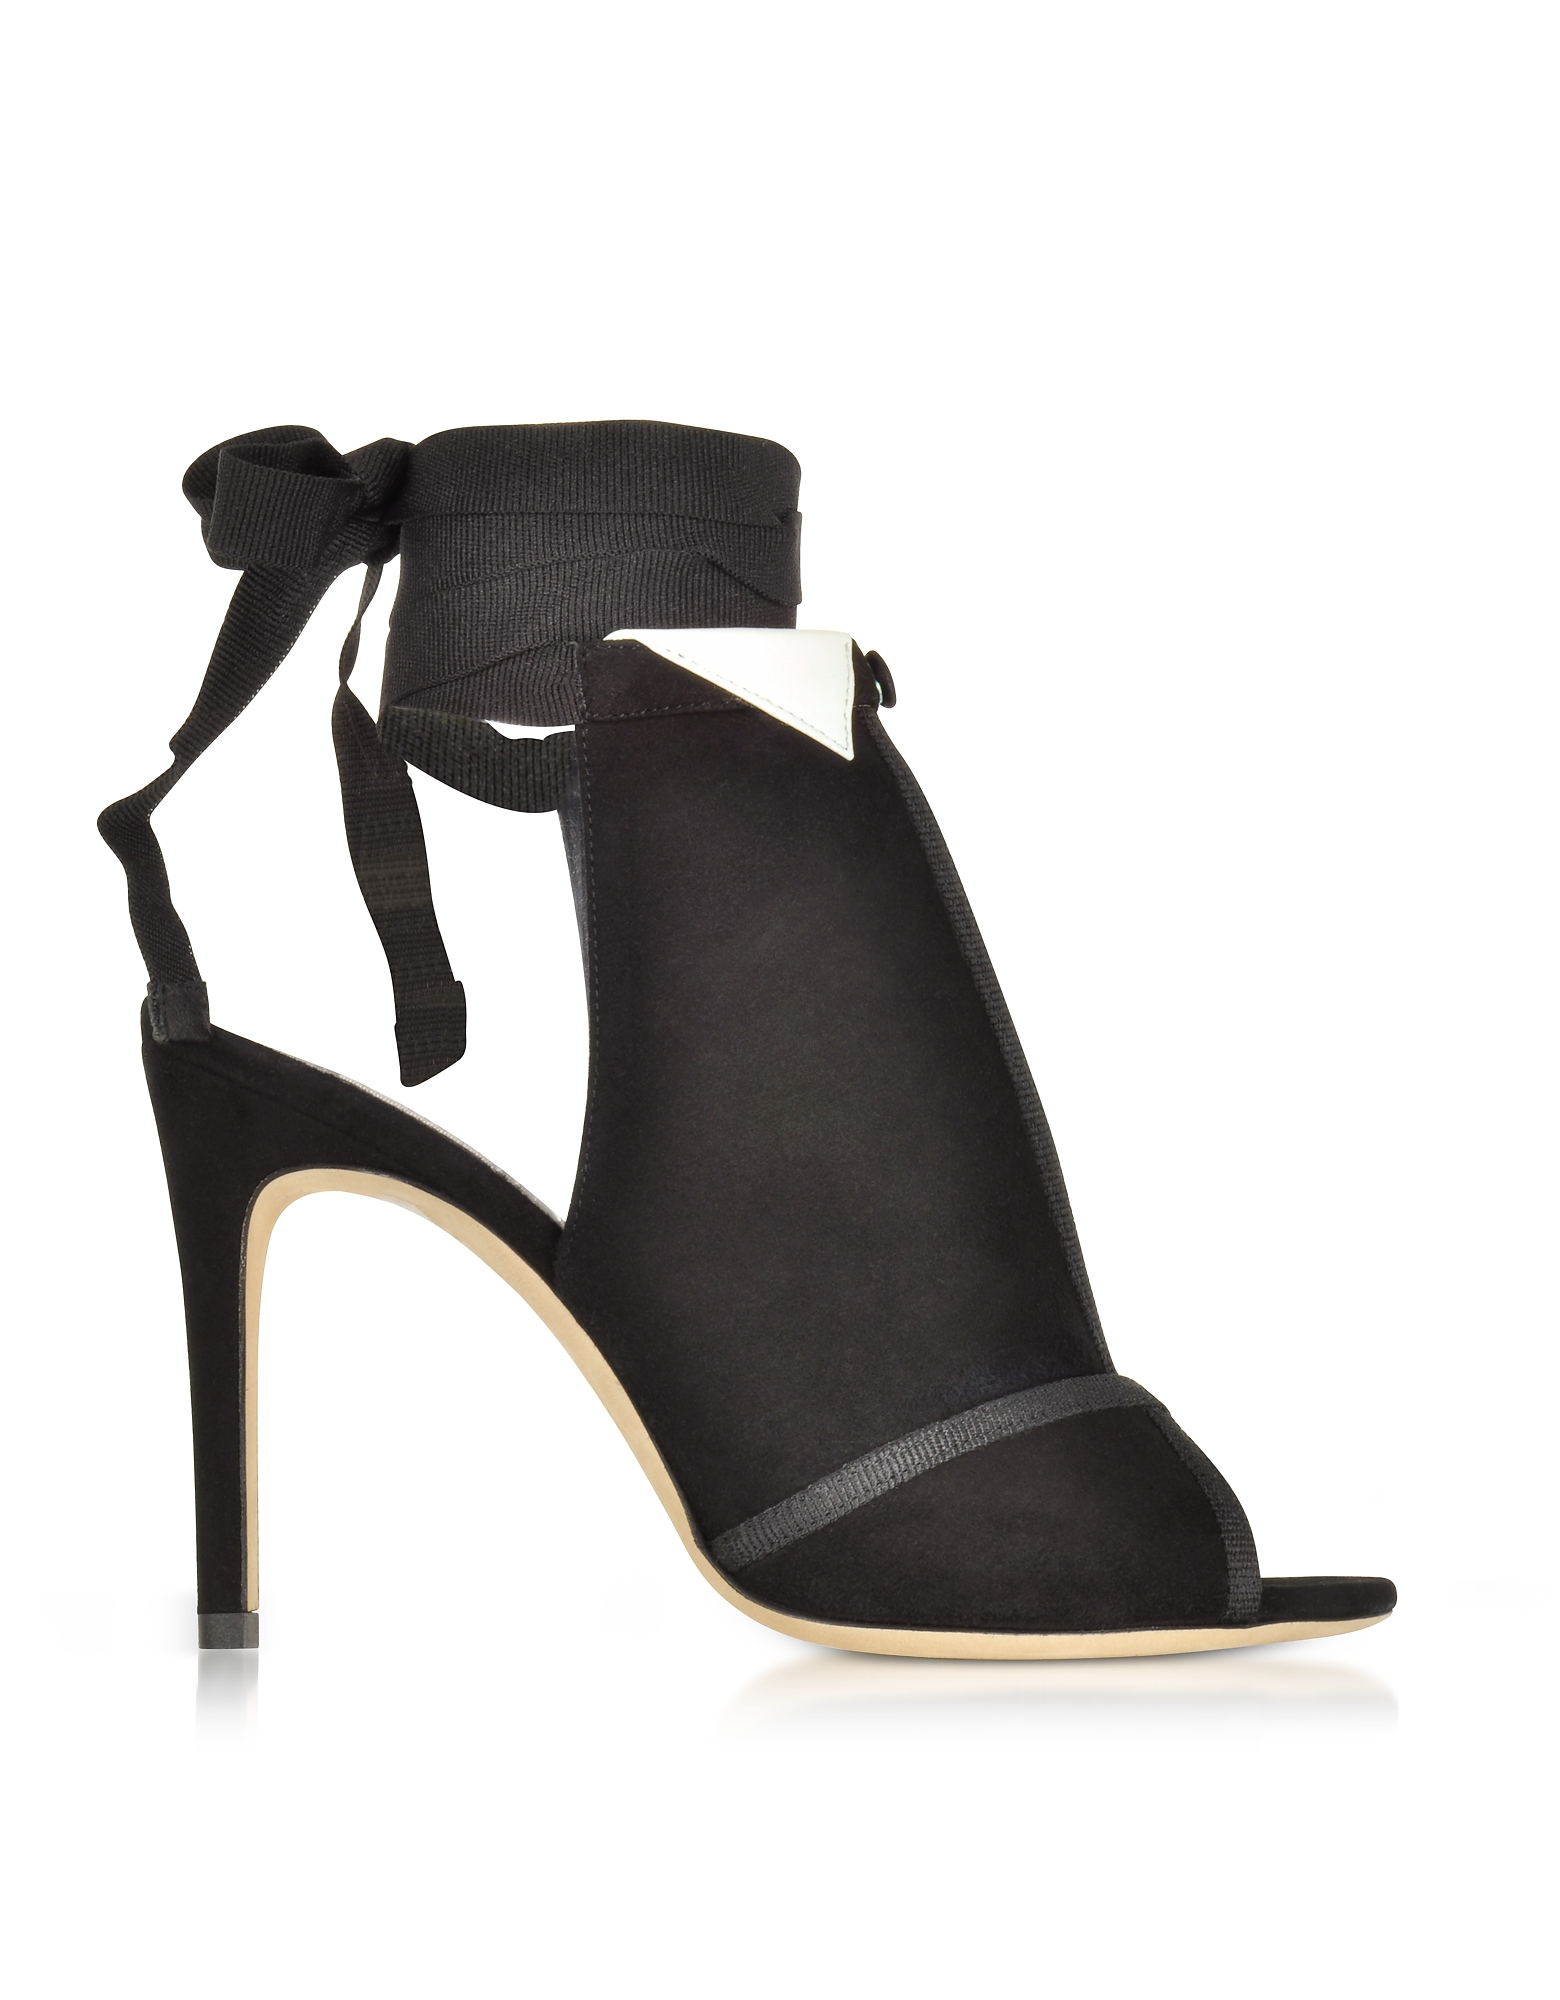 Olgana Paris Shoes, La Jolie Black Suede High Heel Pump